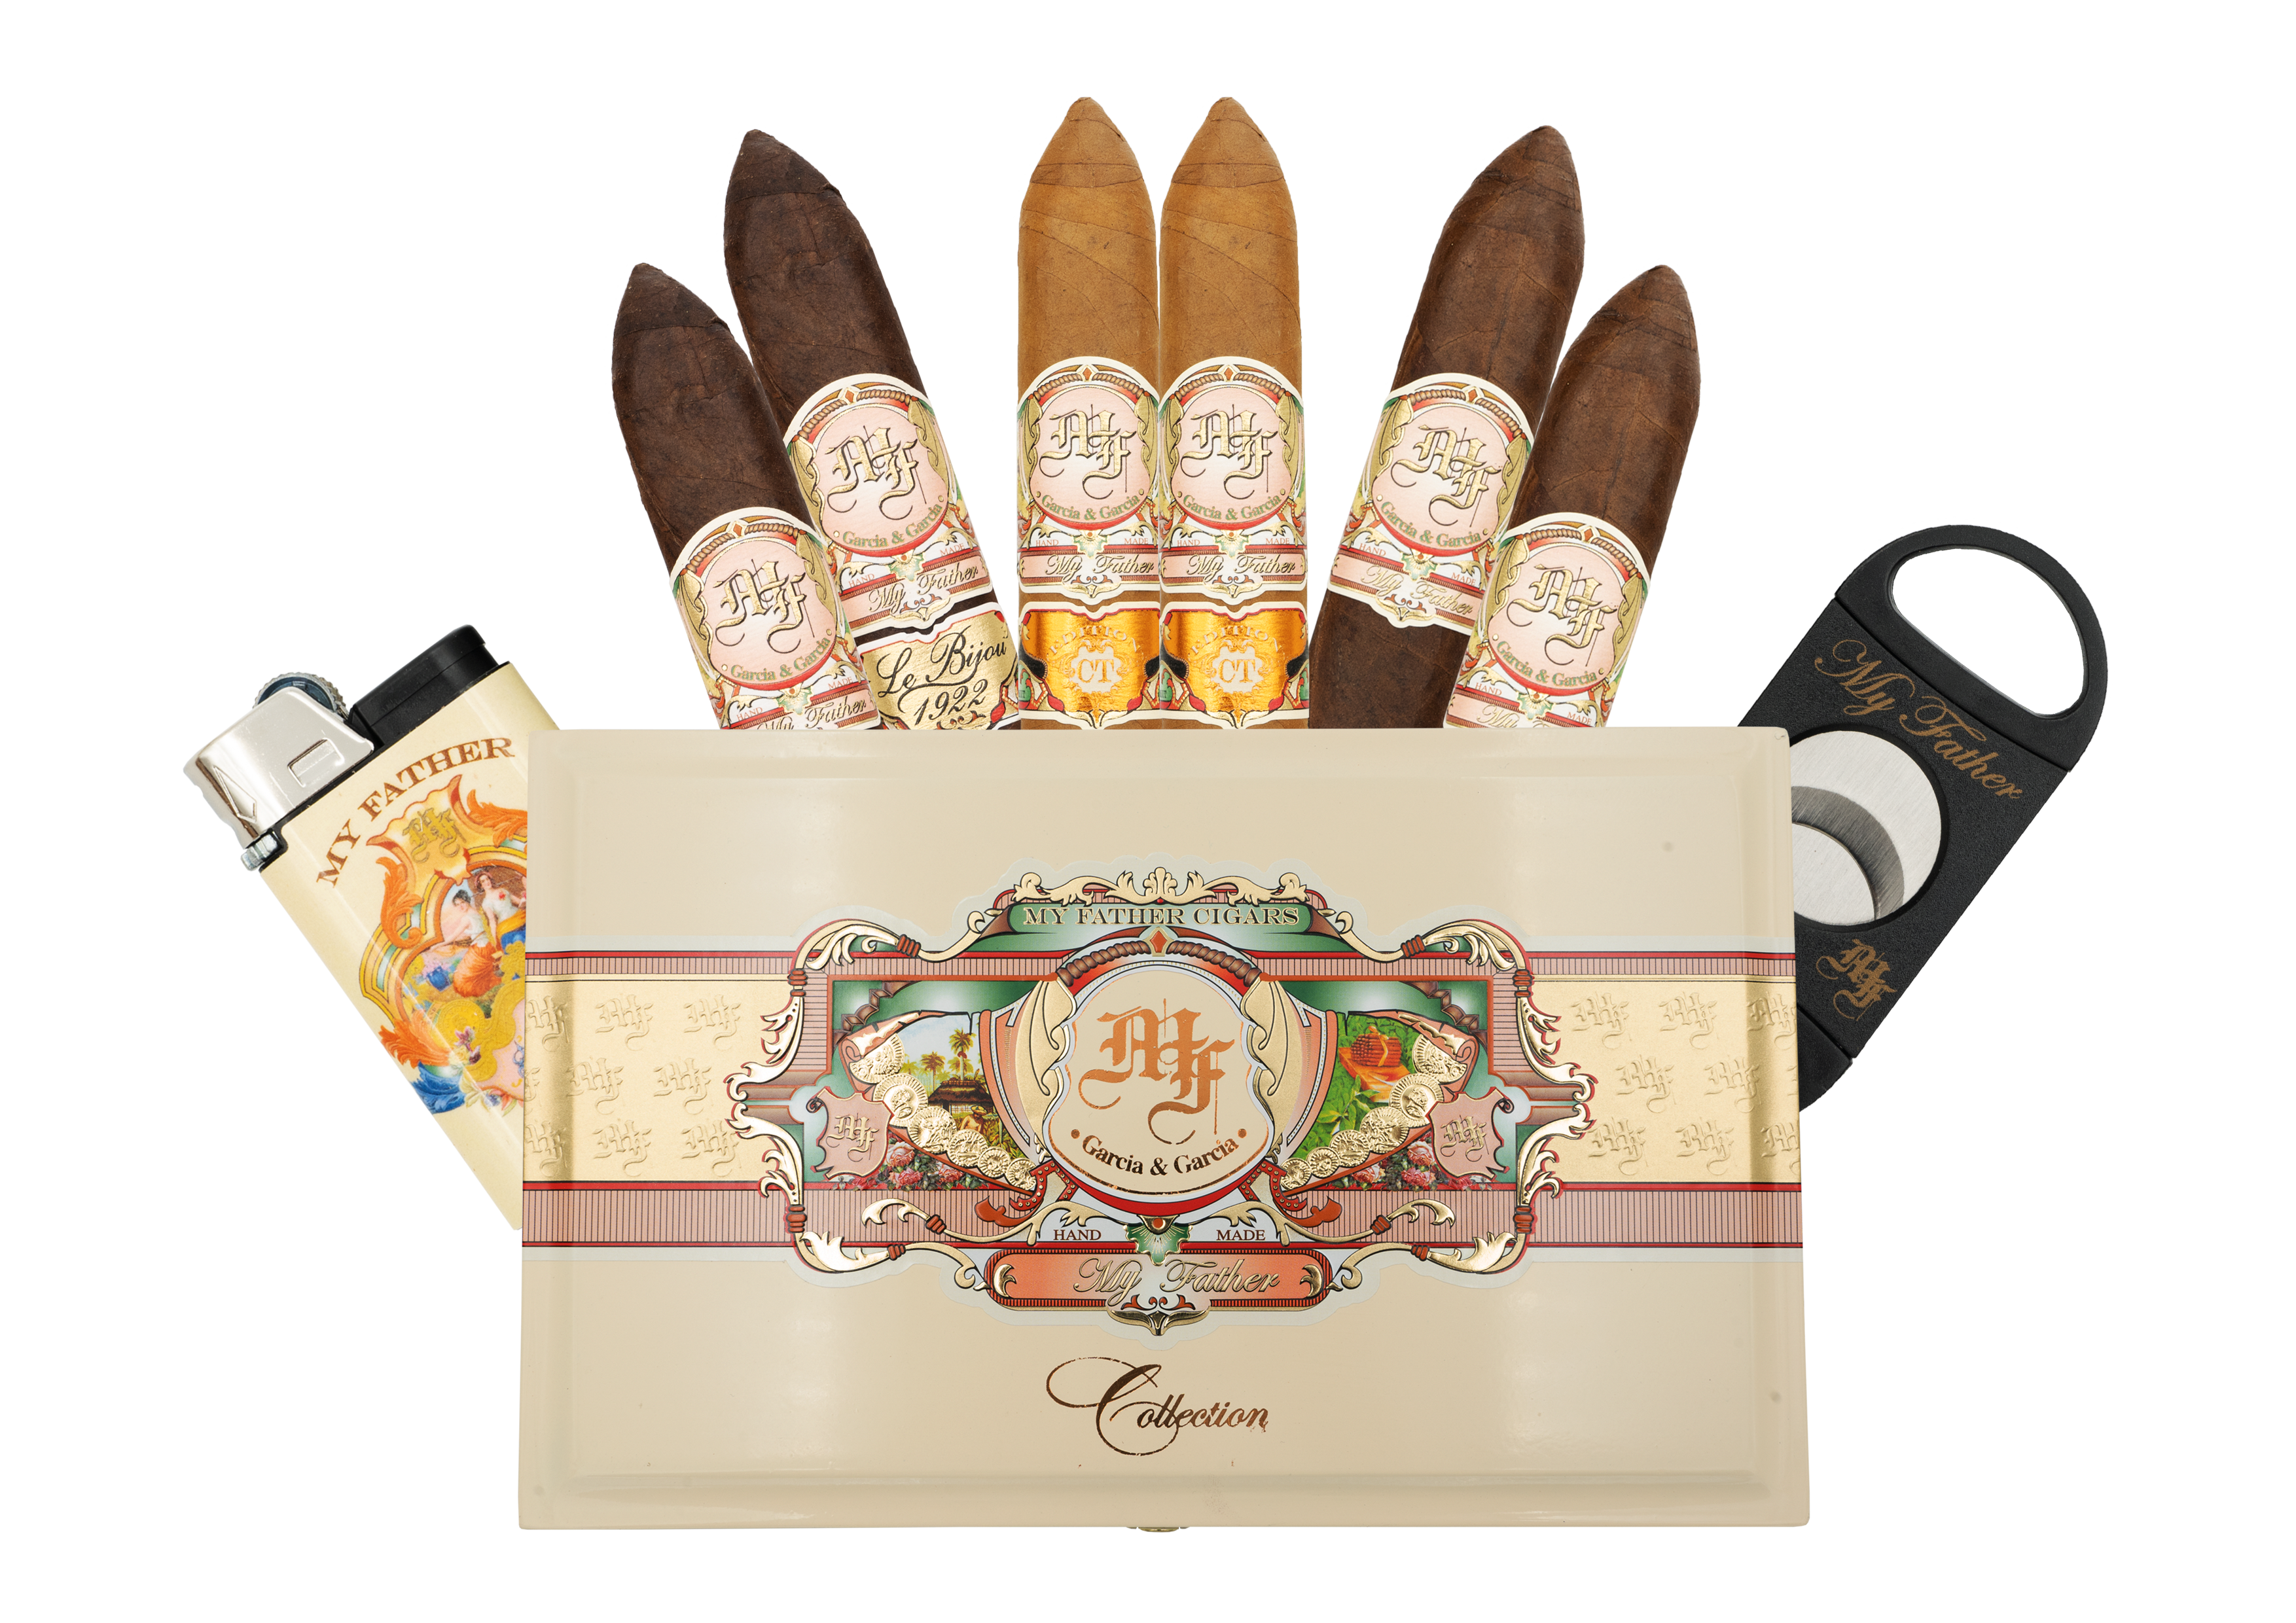 My Father belicoso sampler